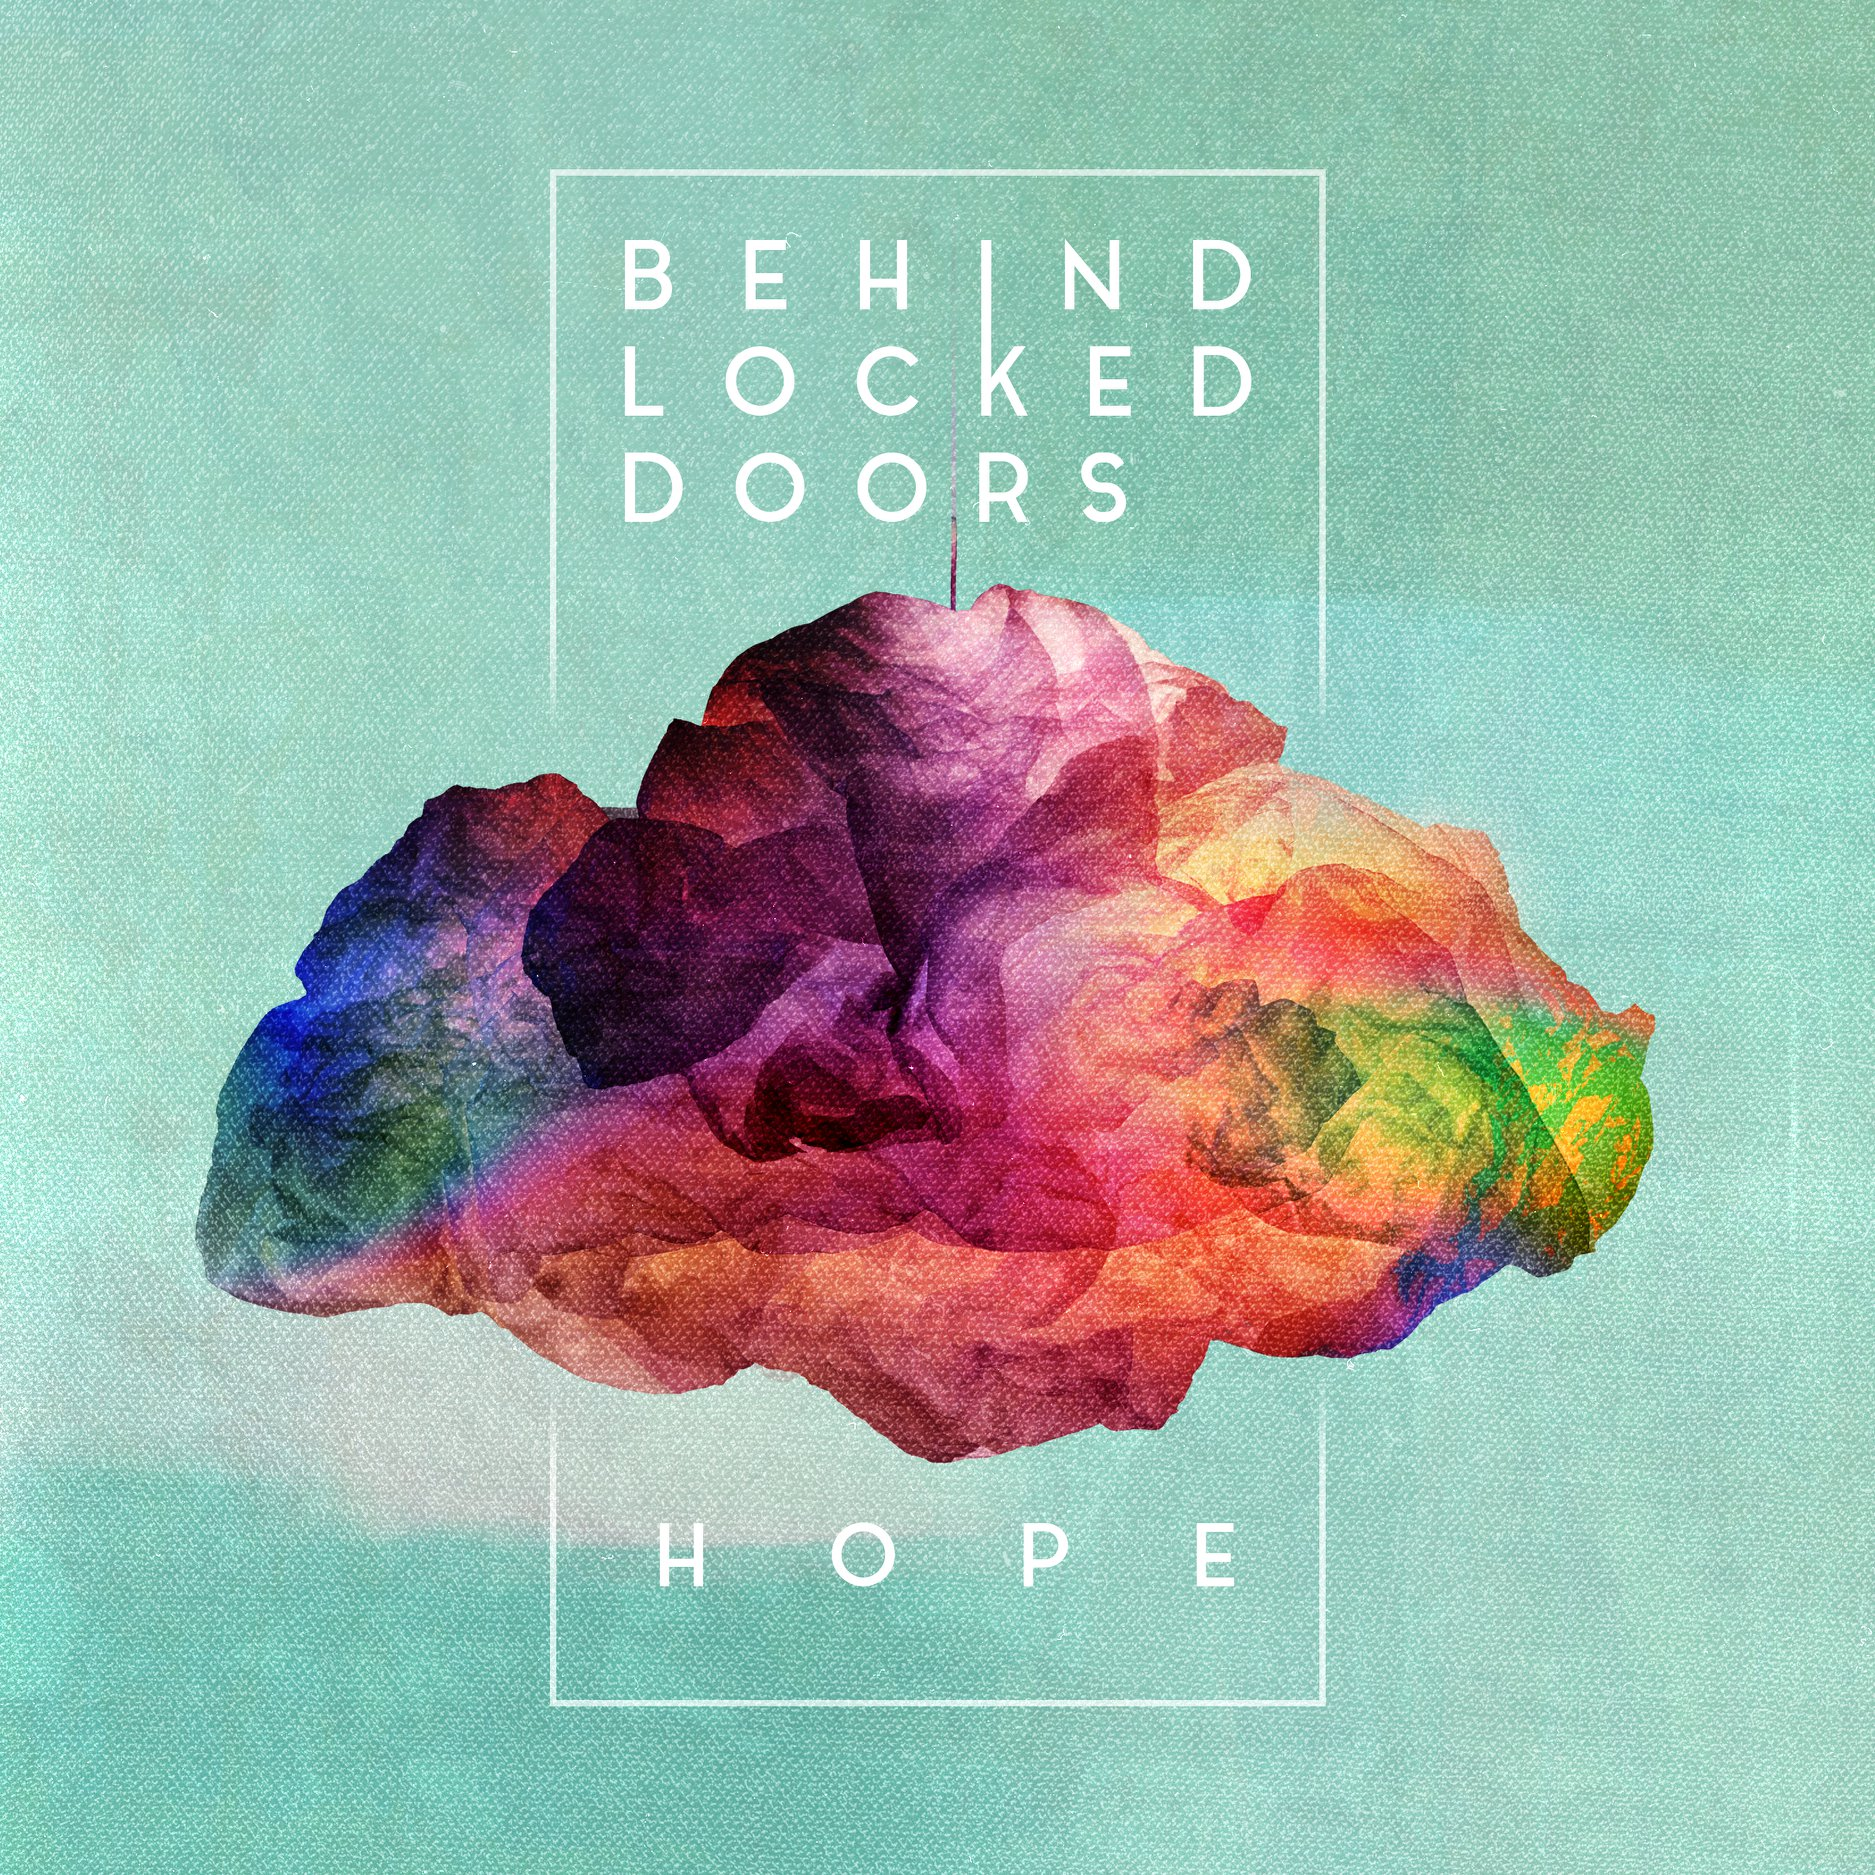 behind locked doors hope EP artwork